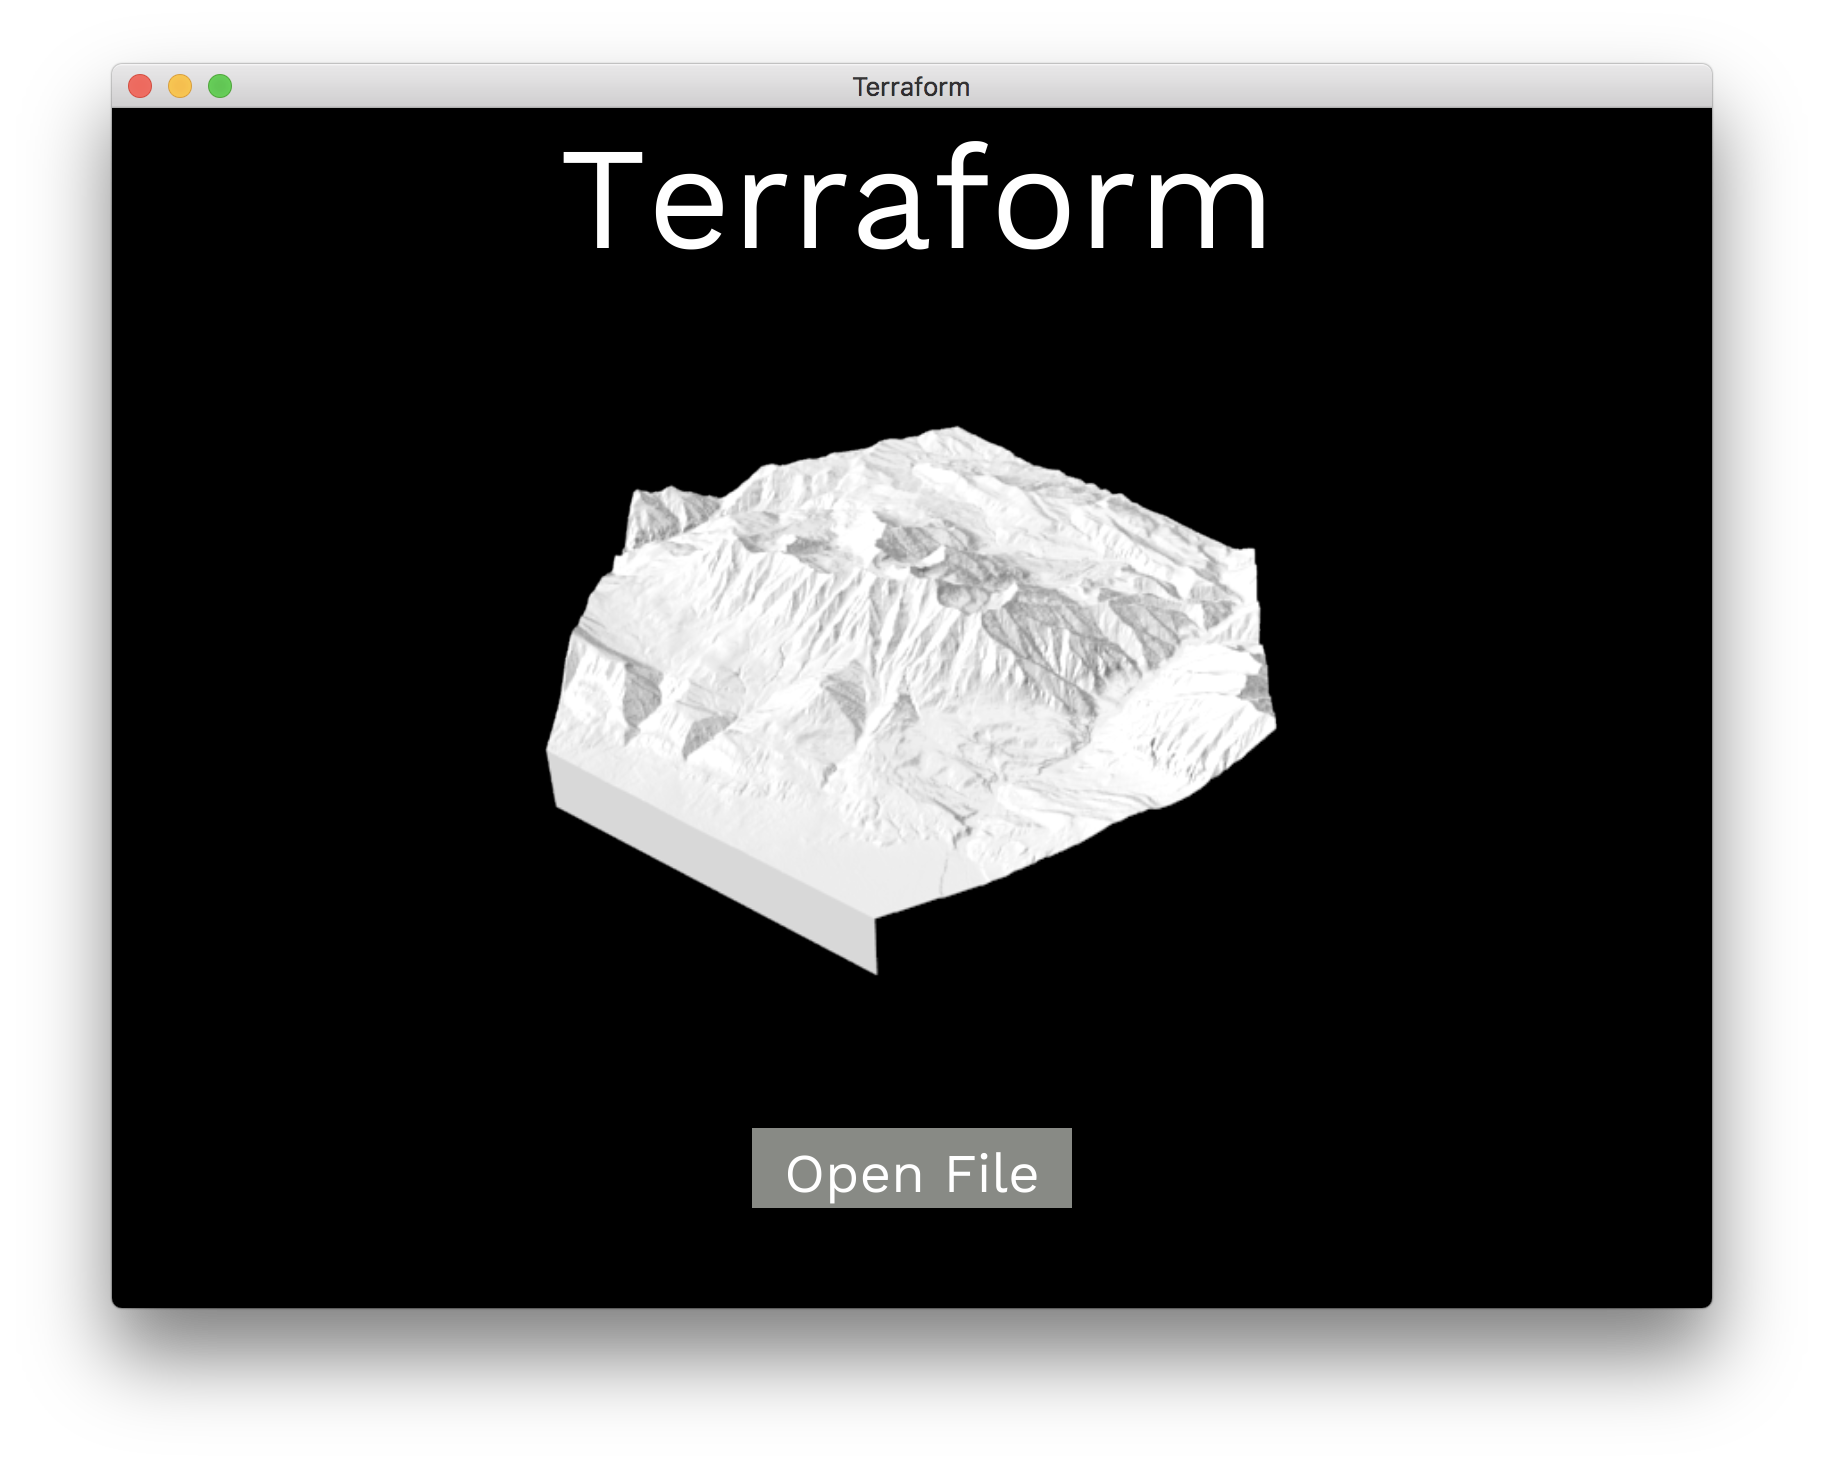 Terraform screenshot